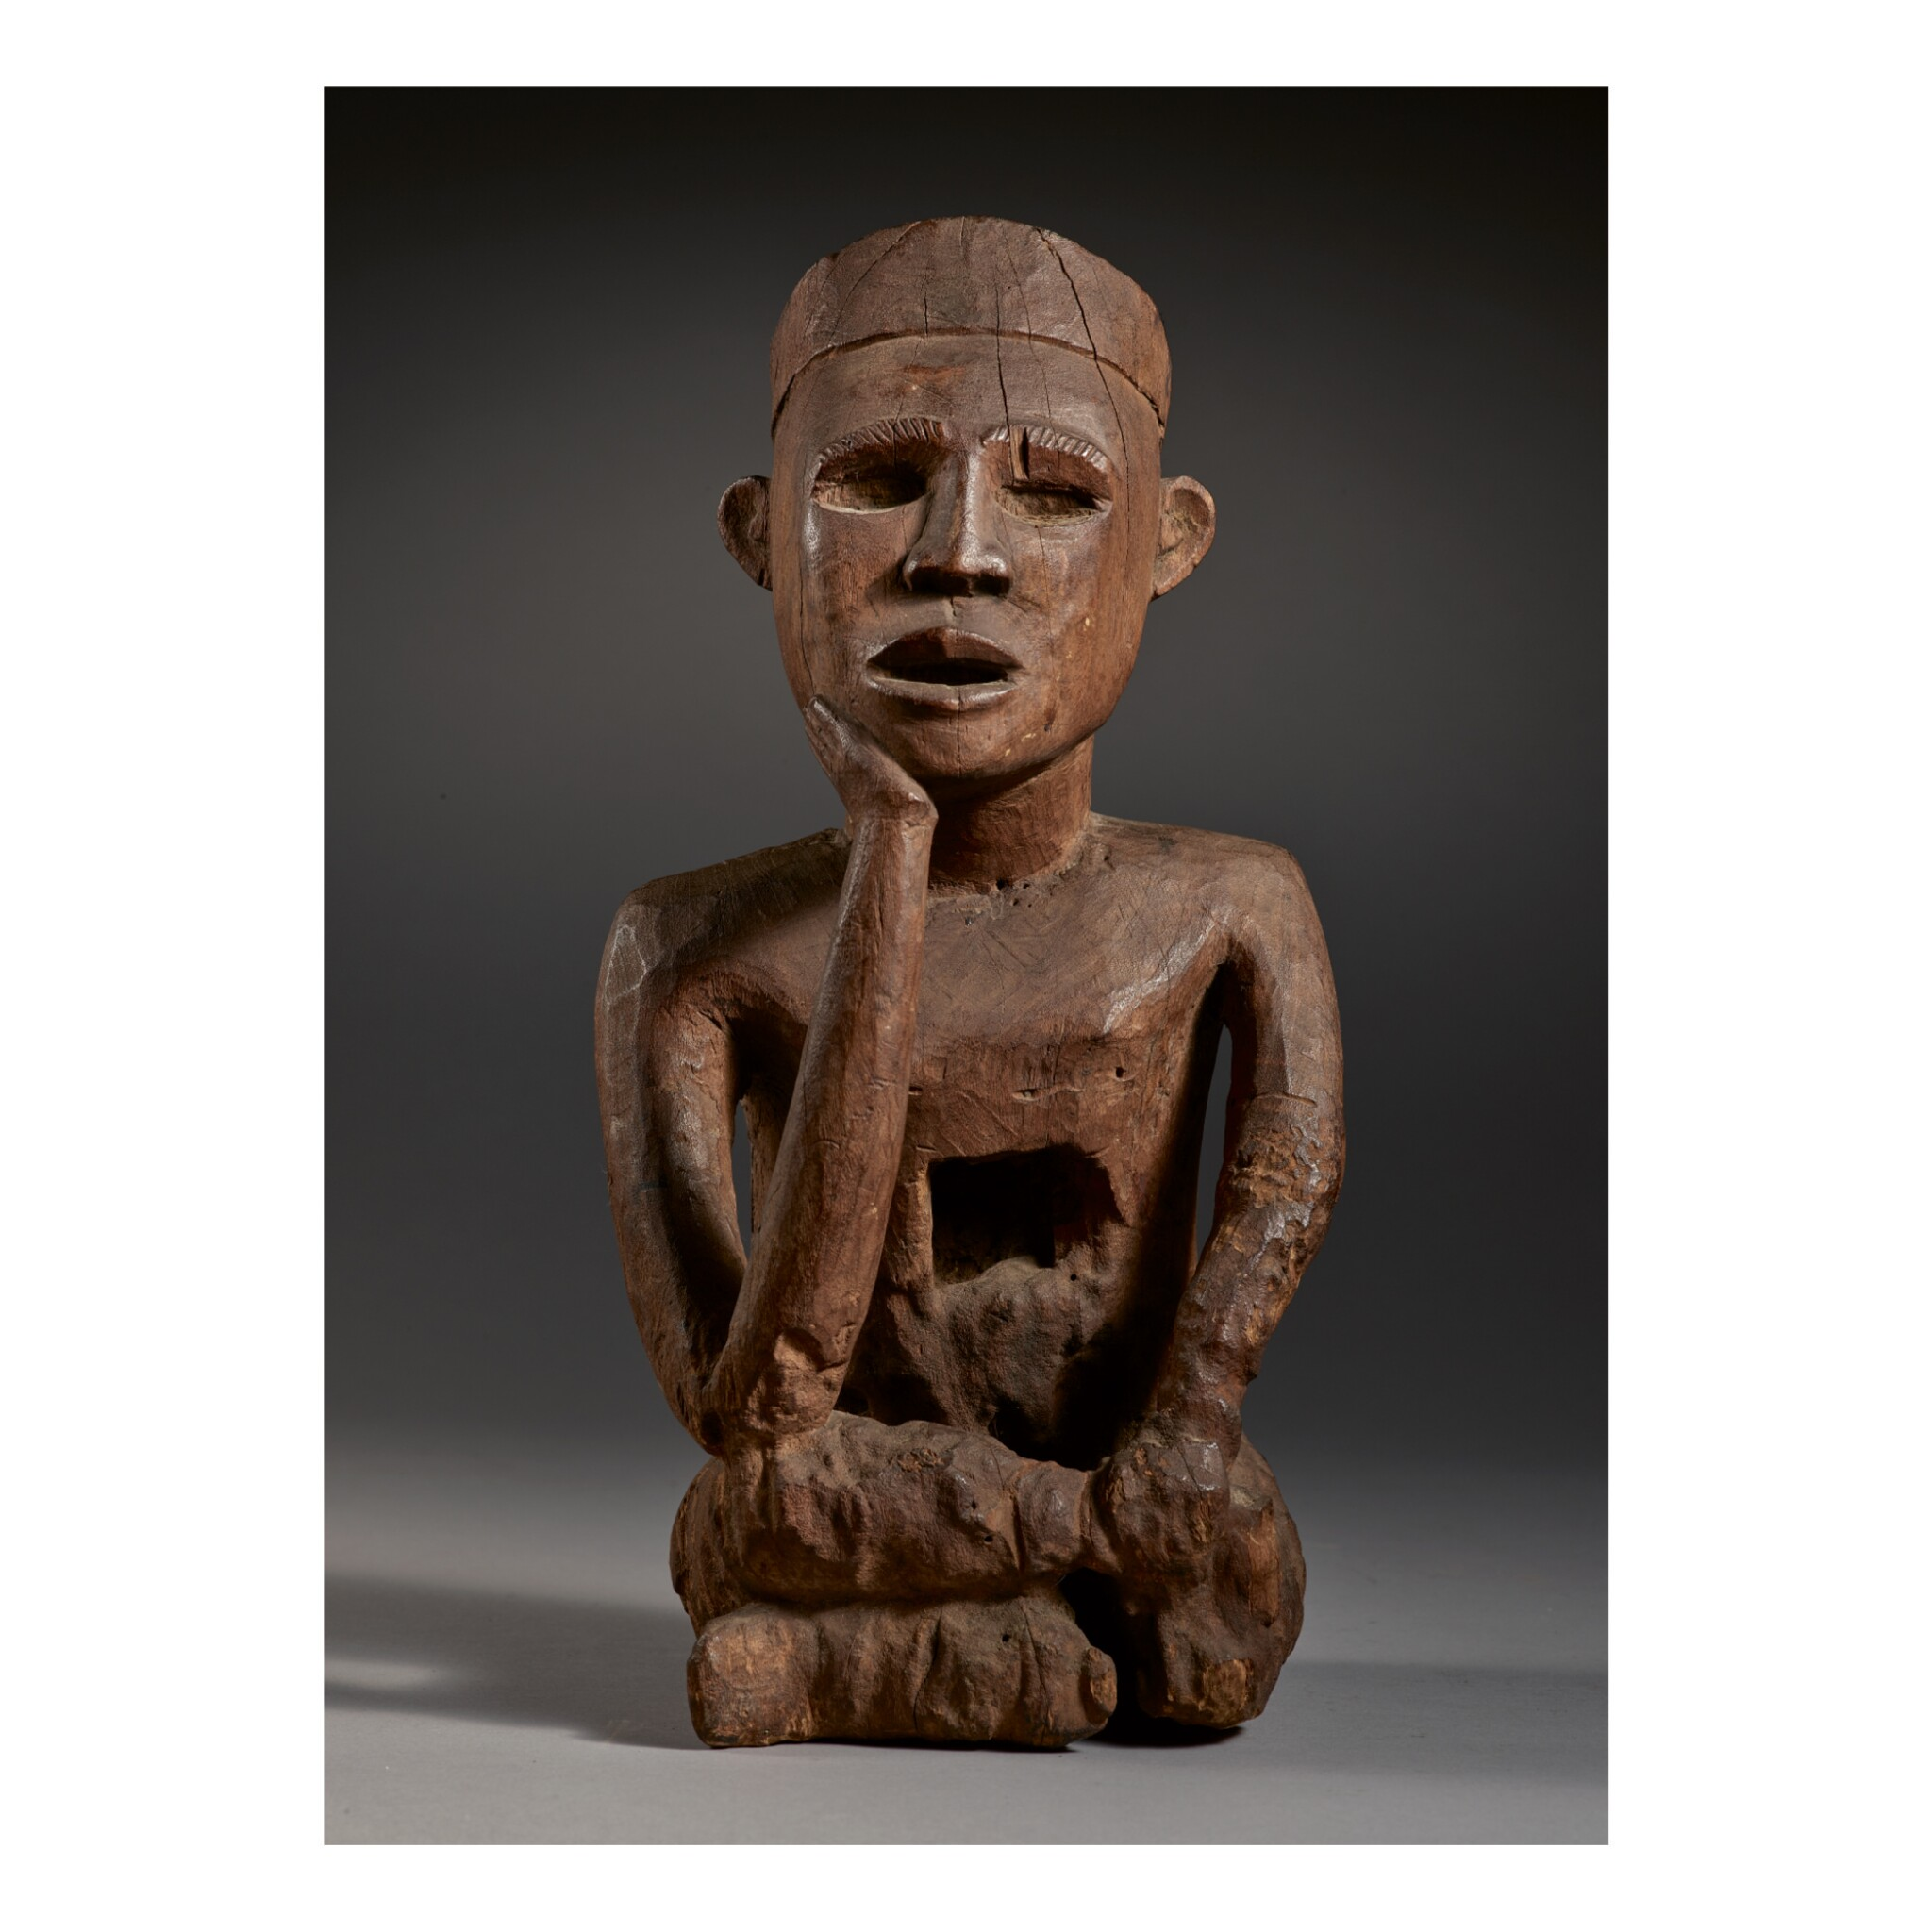 KONGO POWER FIGURE, DEMOCRATIC REPUBLIC OF THE CONGO